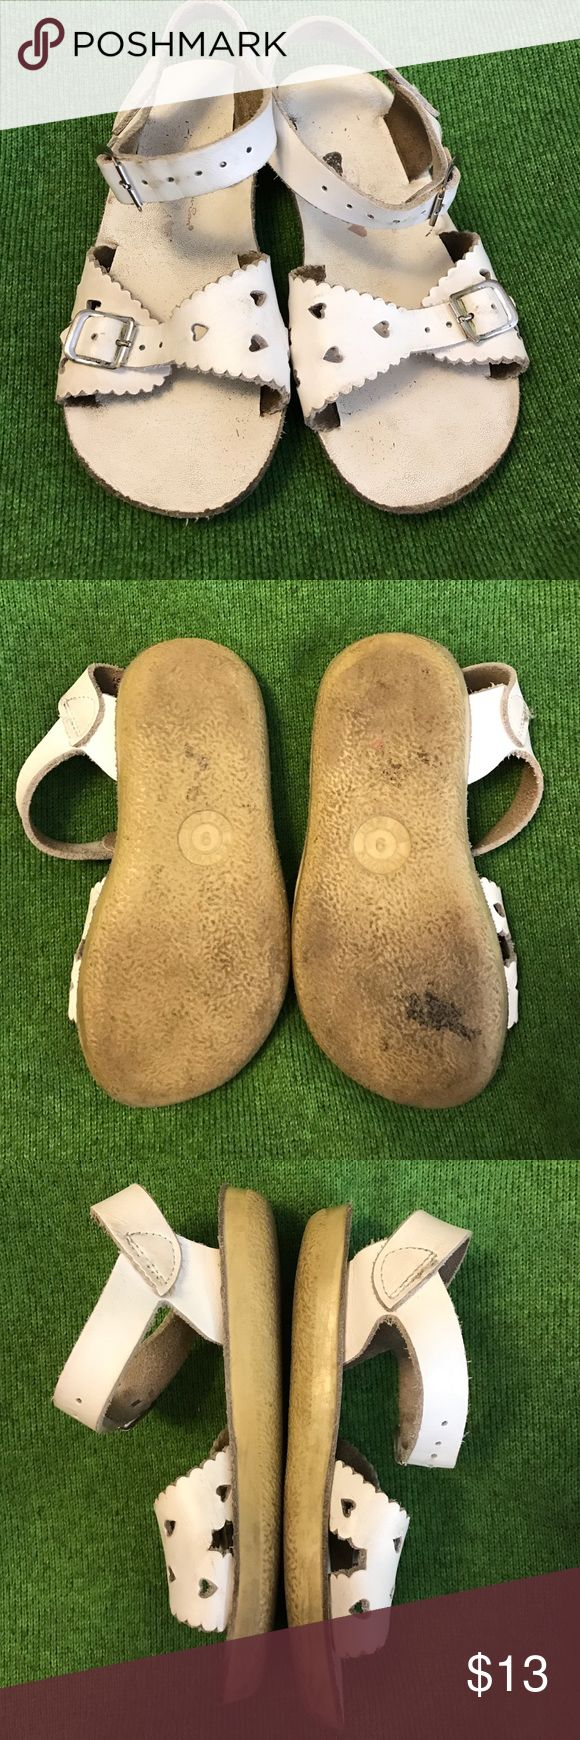 Salt Water Sun Sand white sweetheart sandals Salt water sun sand sandals. Sweetheart style size 9. Loved but lots of life left. Need a little clean and good to go. Salt Water Sandals by Hoy Shoes Sandals & Flip Flops